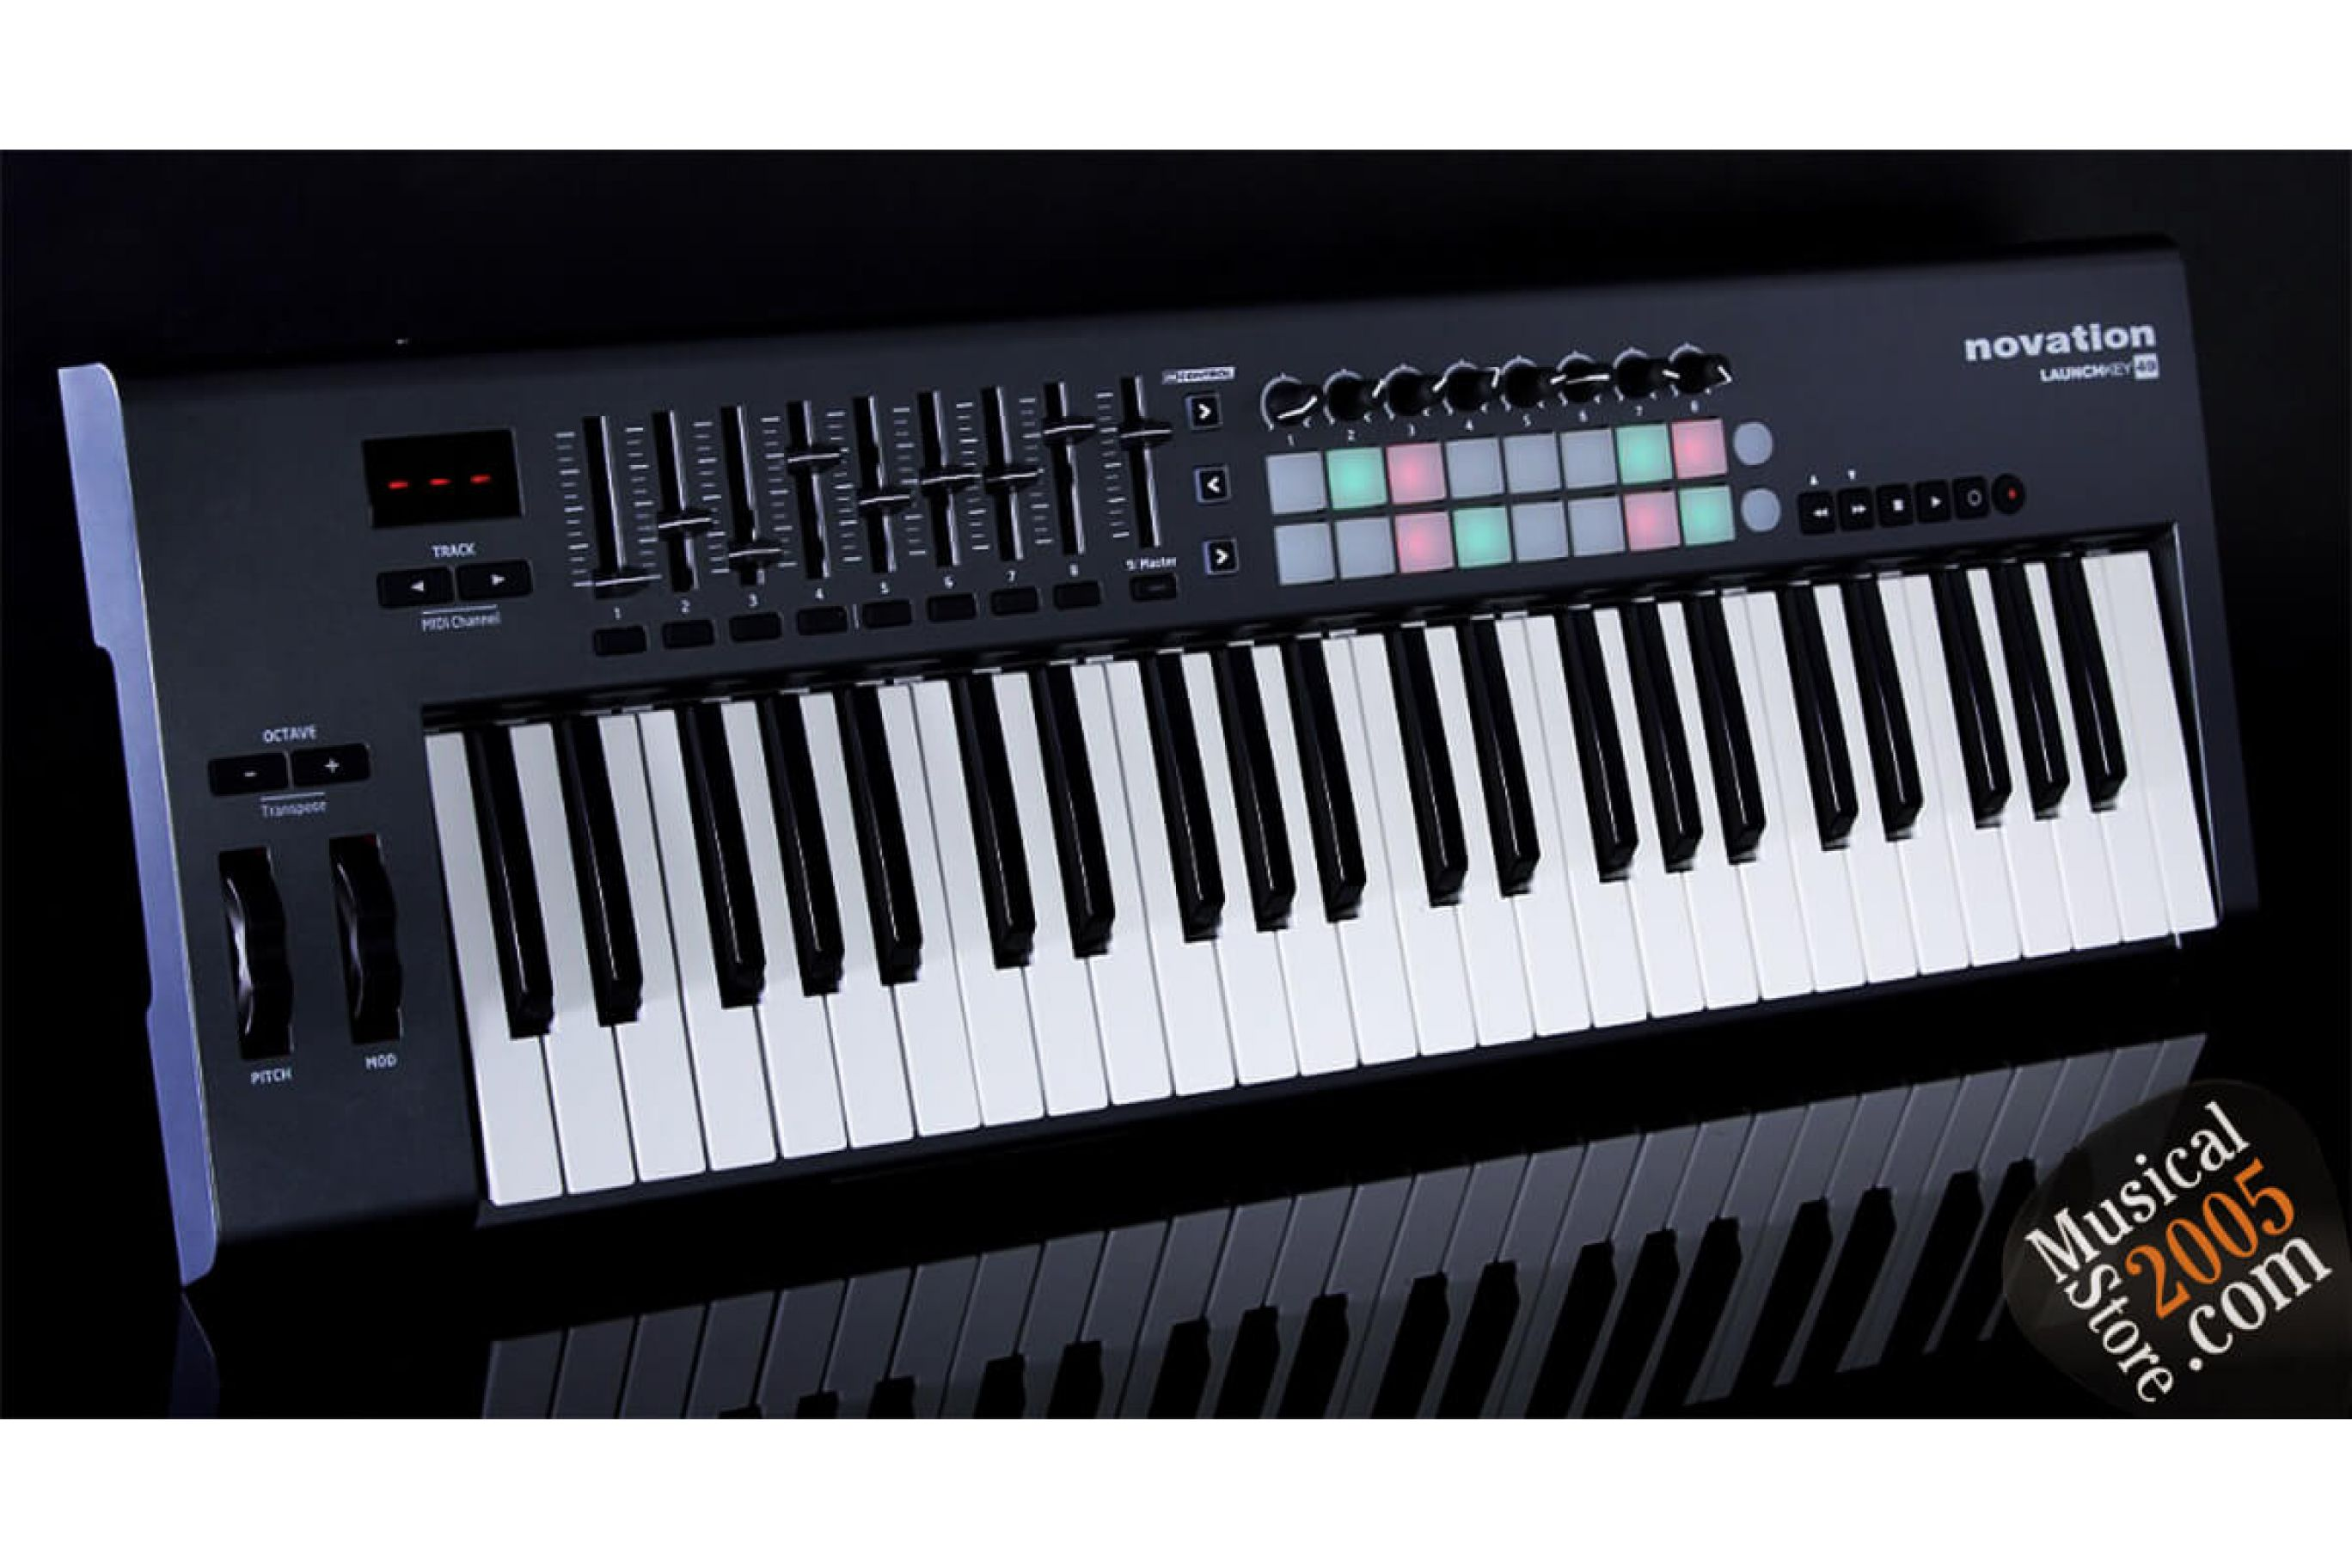 Novation Launchkey funzionalità e confronto